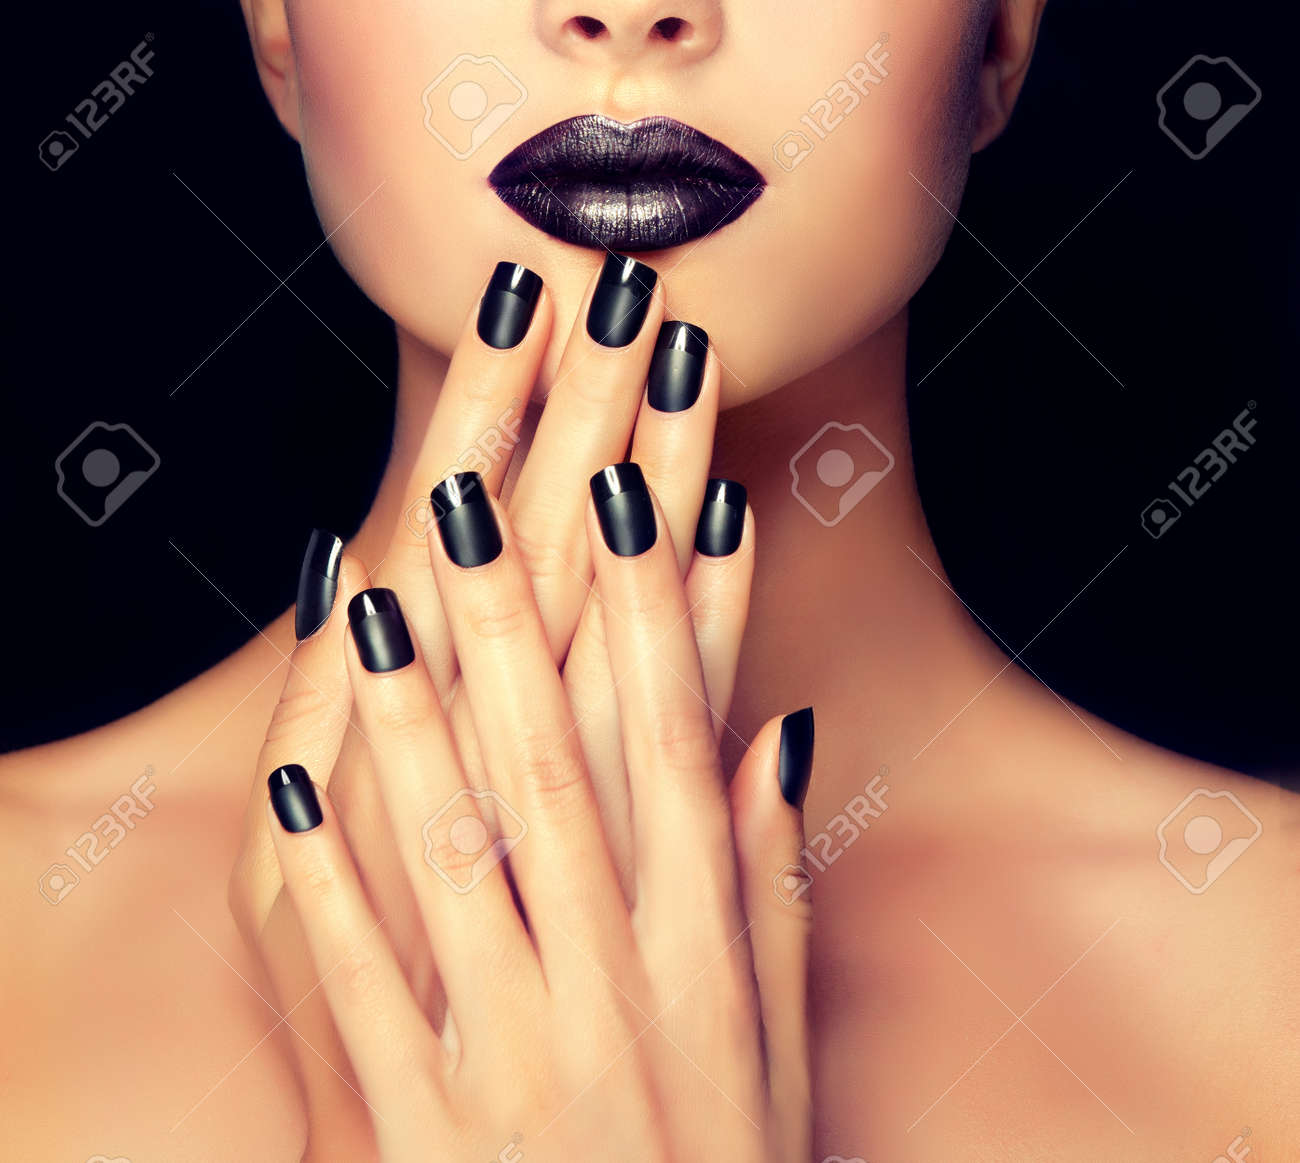 Beautiful girl showing black manicure nails . makeup and cosmetics Stock Photo - 52325254